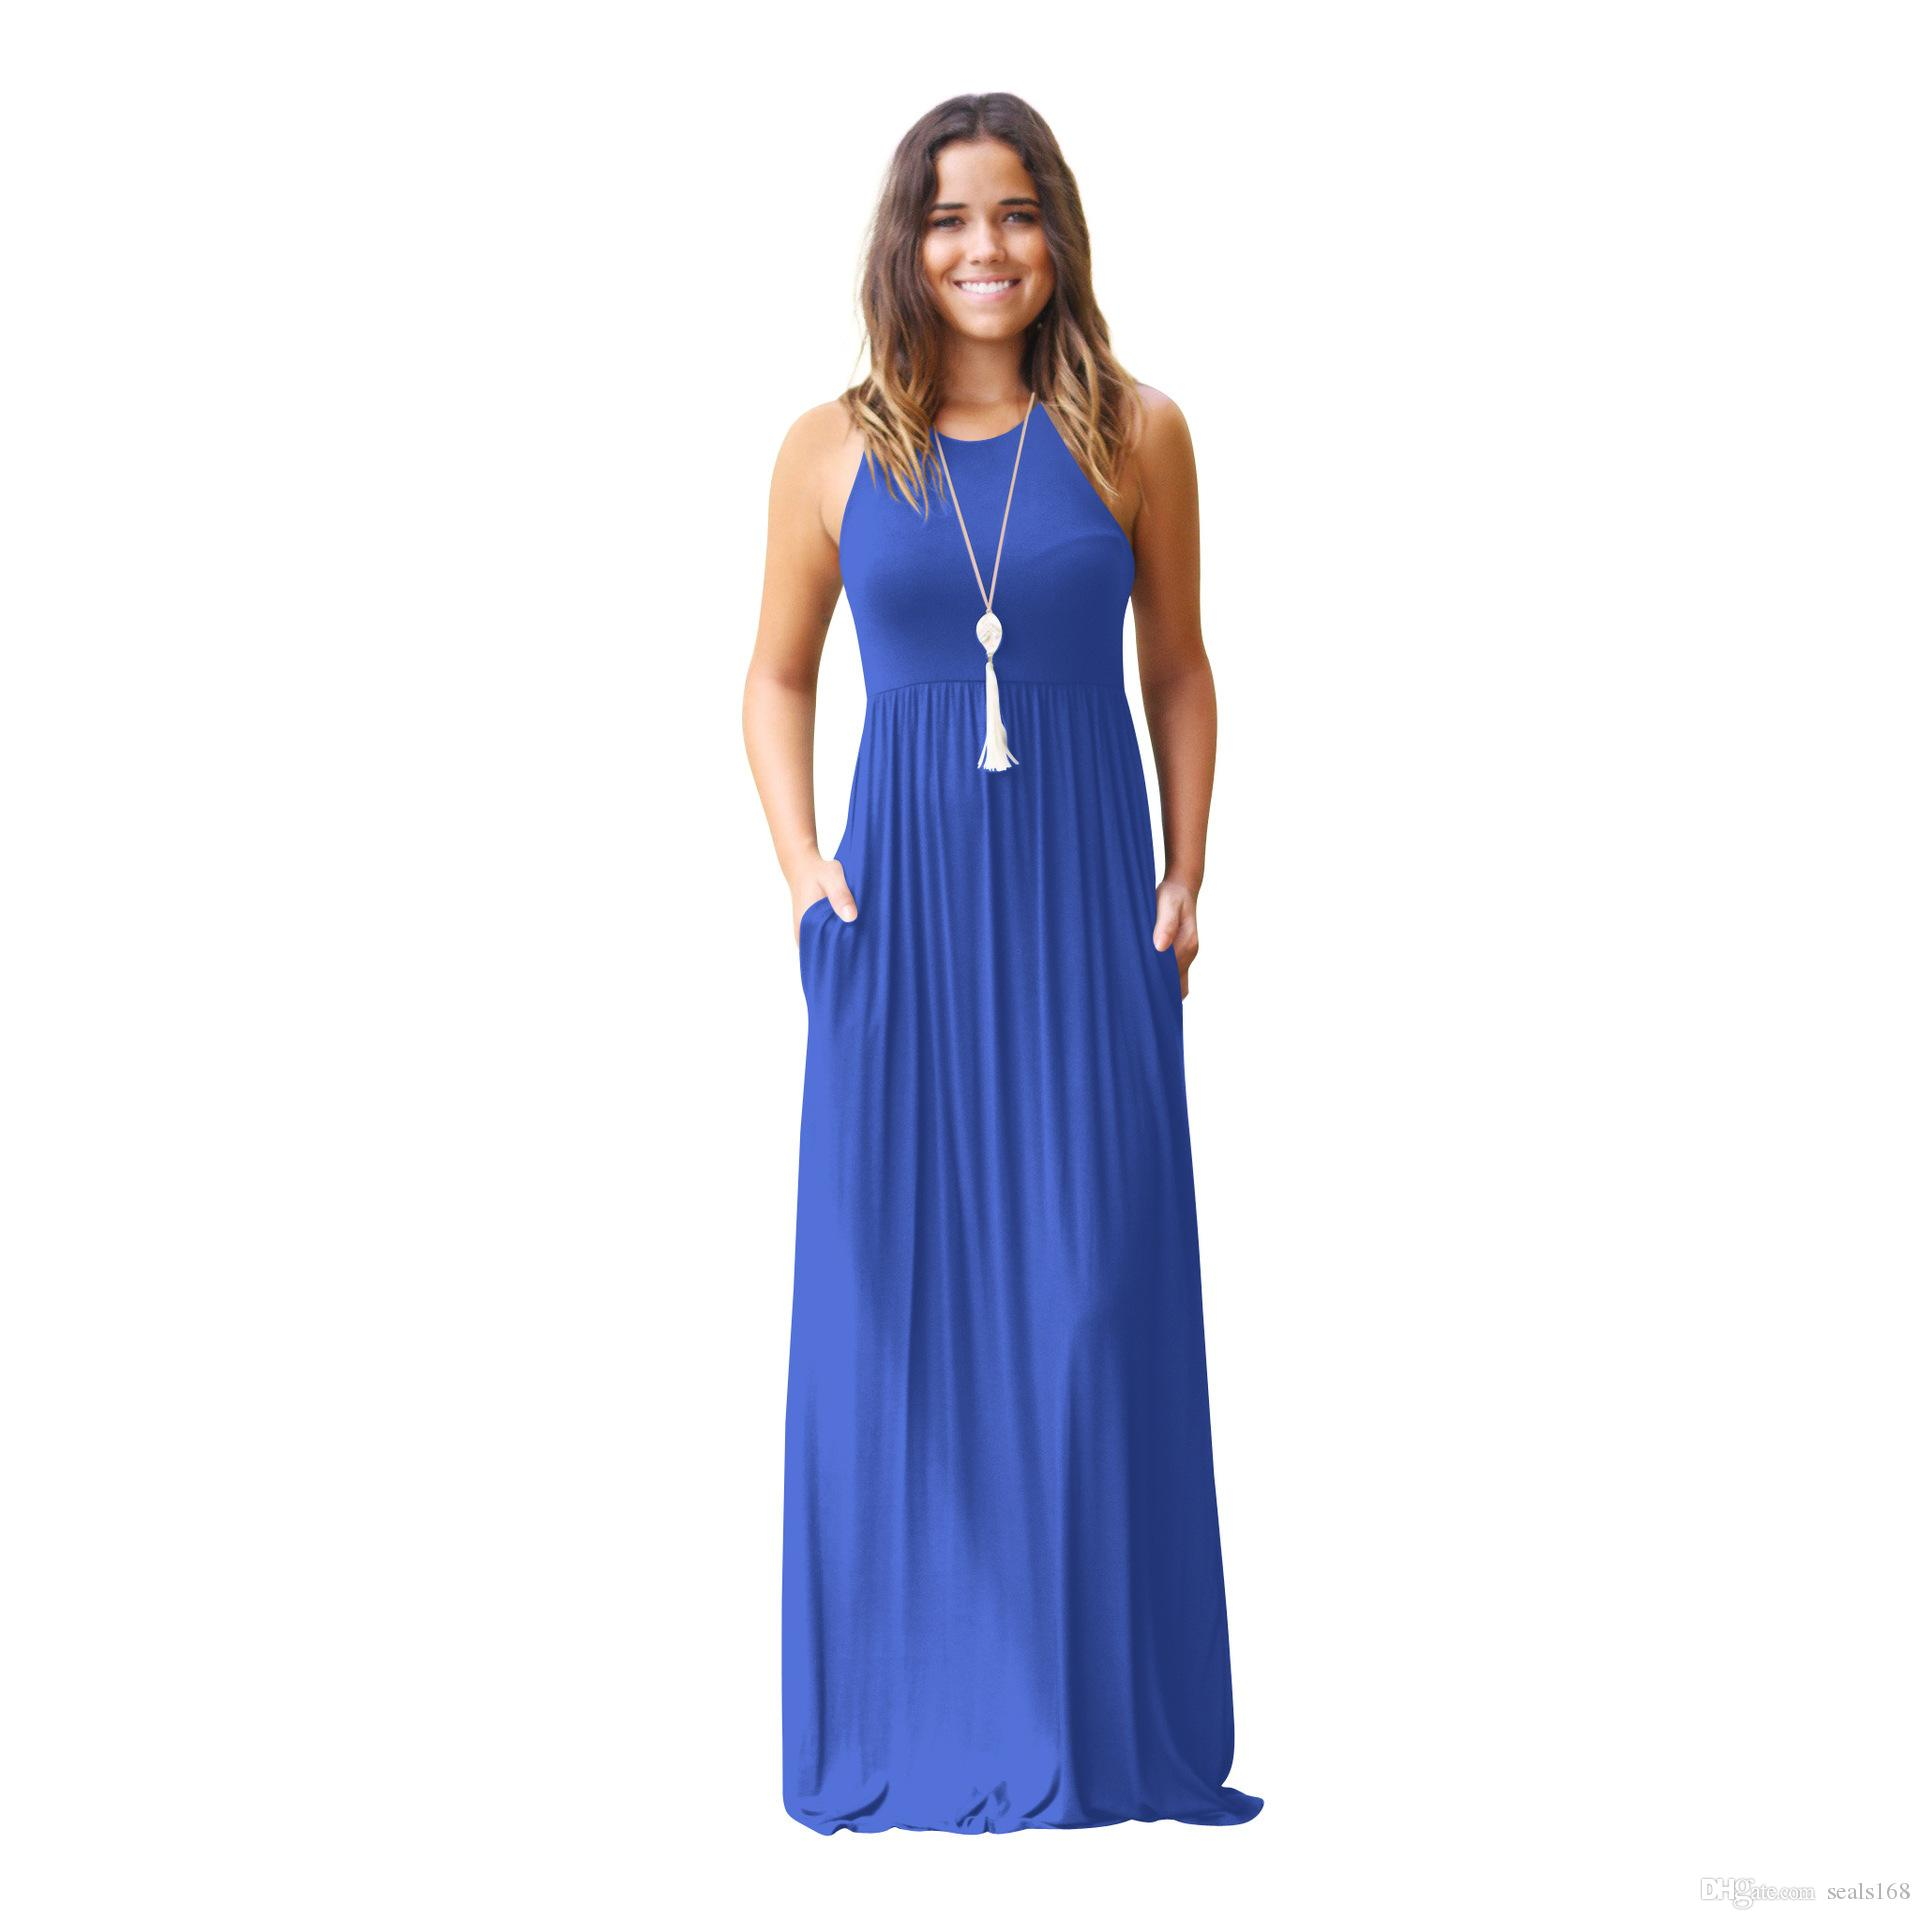 Women Maxi Dresses Sleeveless Loose Plain Dresses Casual Long Dresses With Pockets Beach Dress Home Plus Size Clothing S-2XL HH7-1144